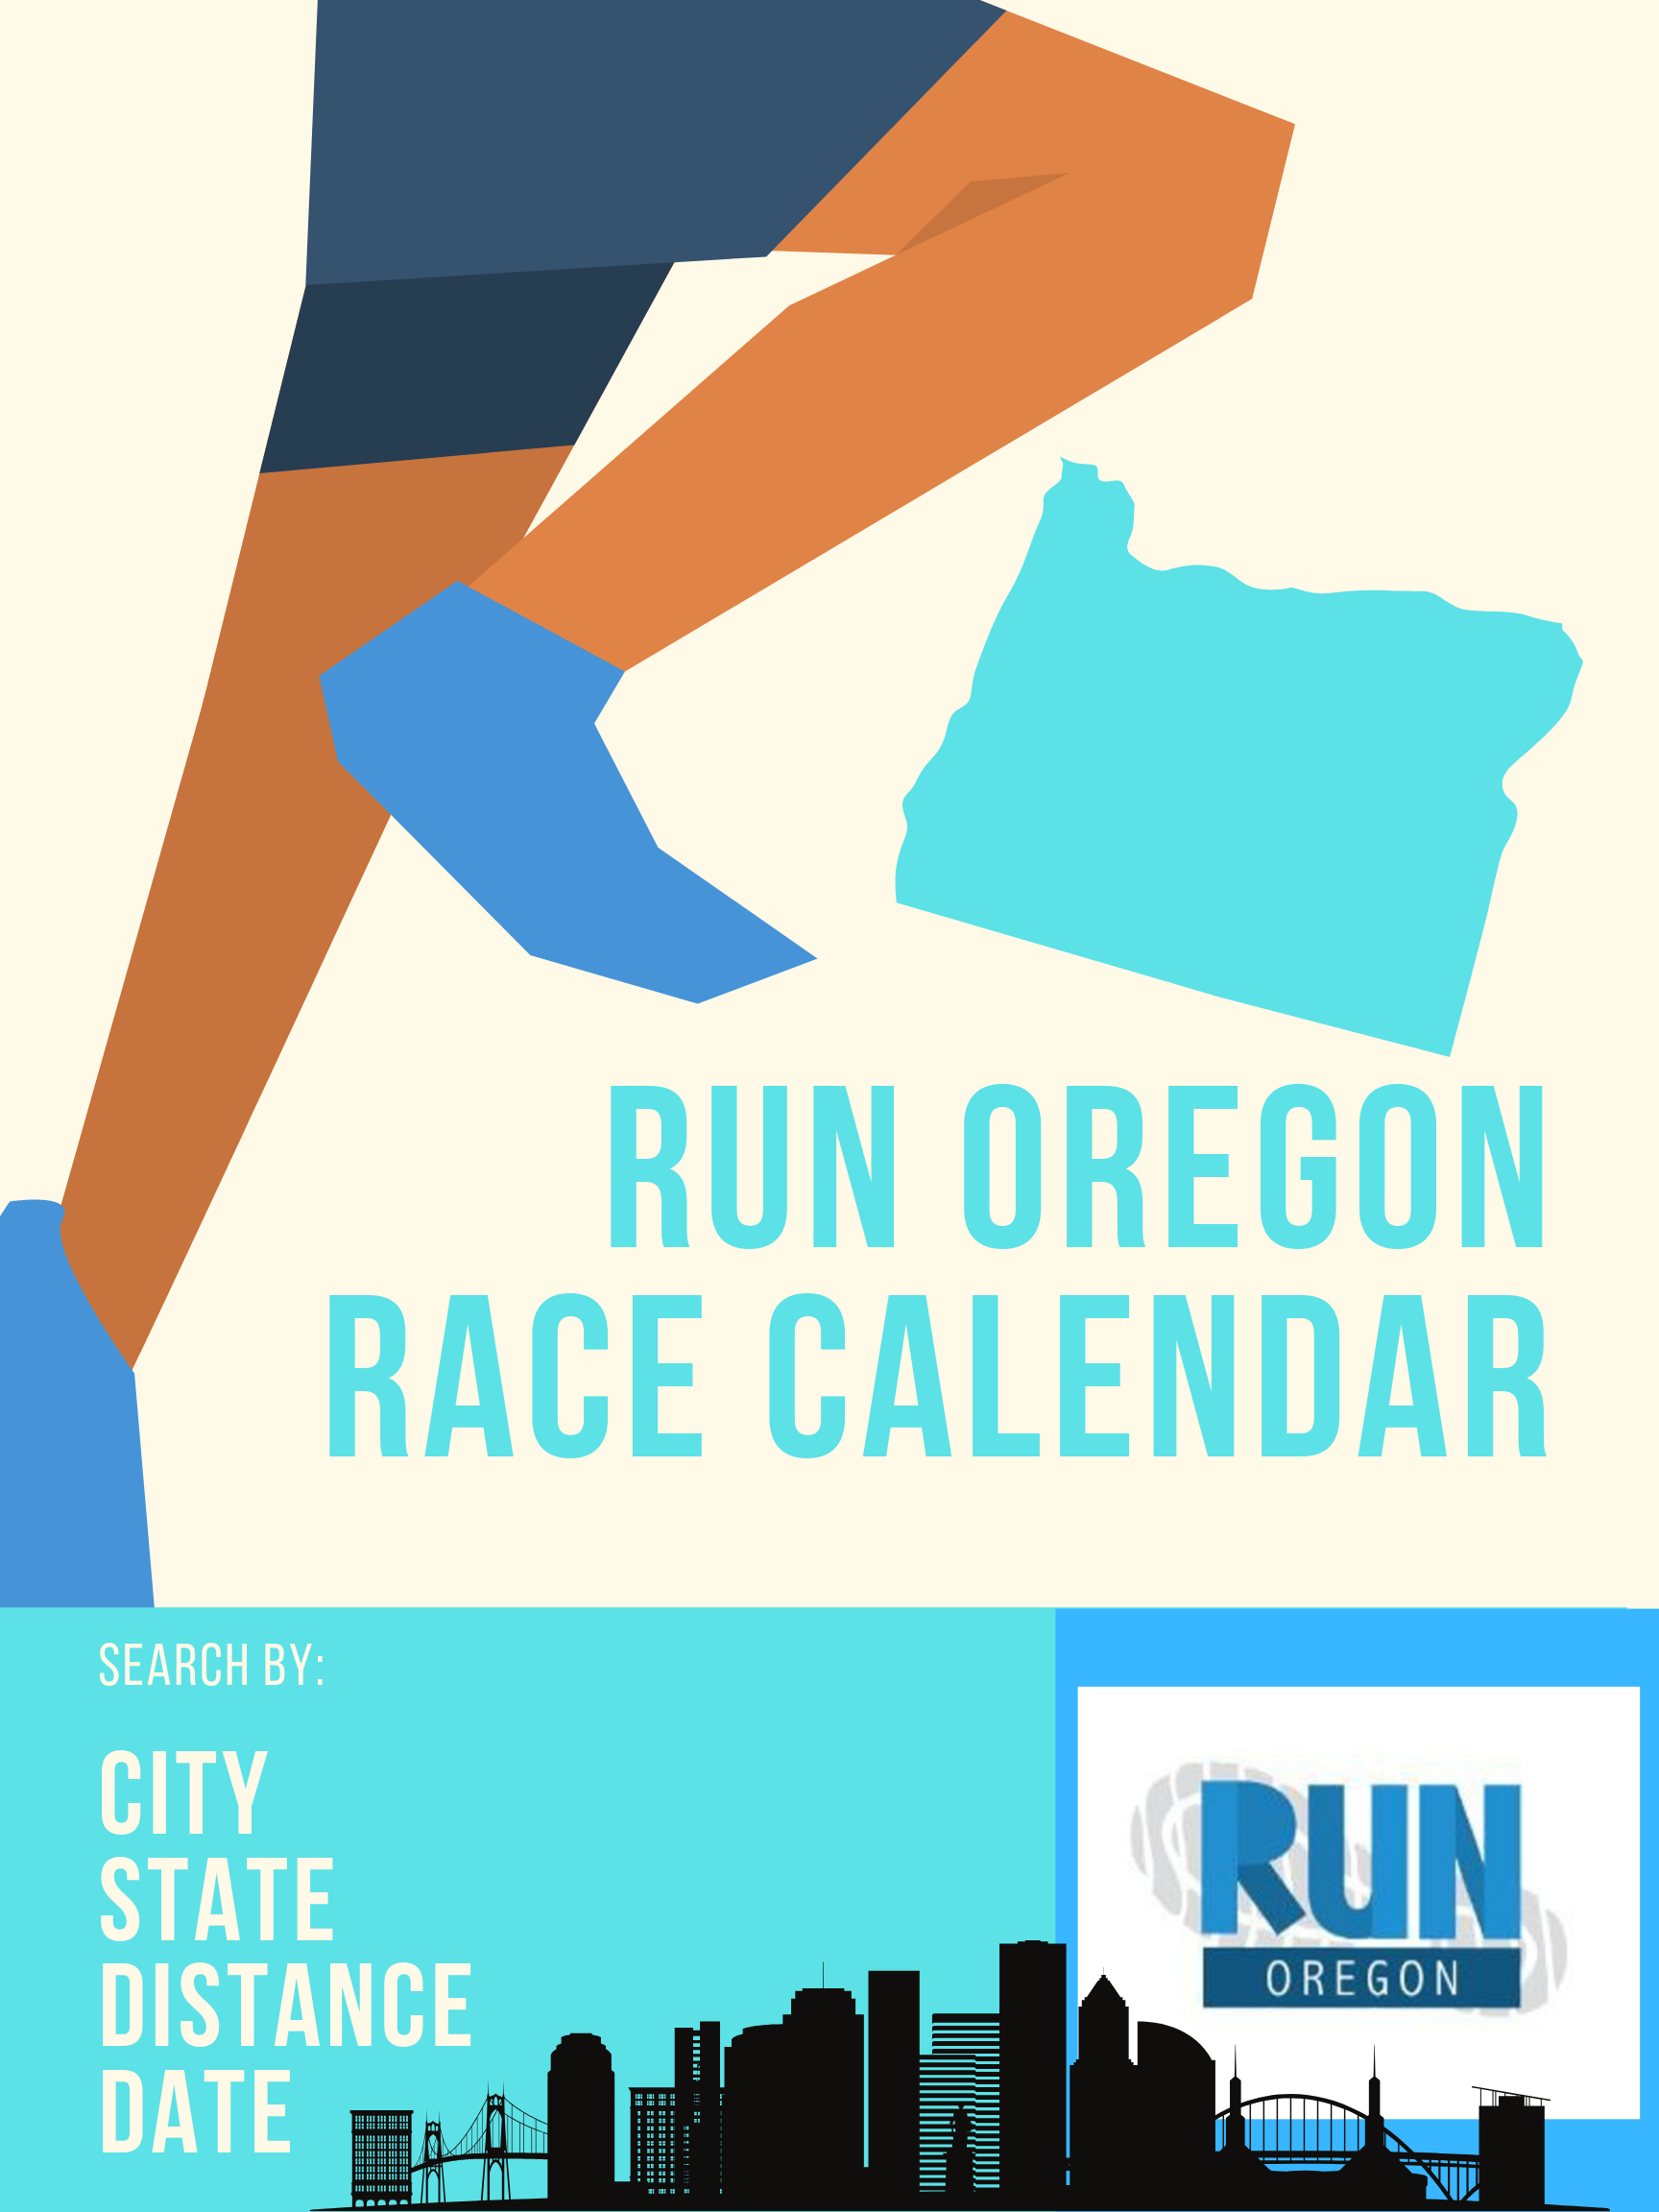 Run Oregon Race Calendar